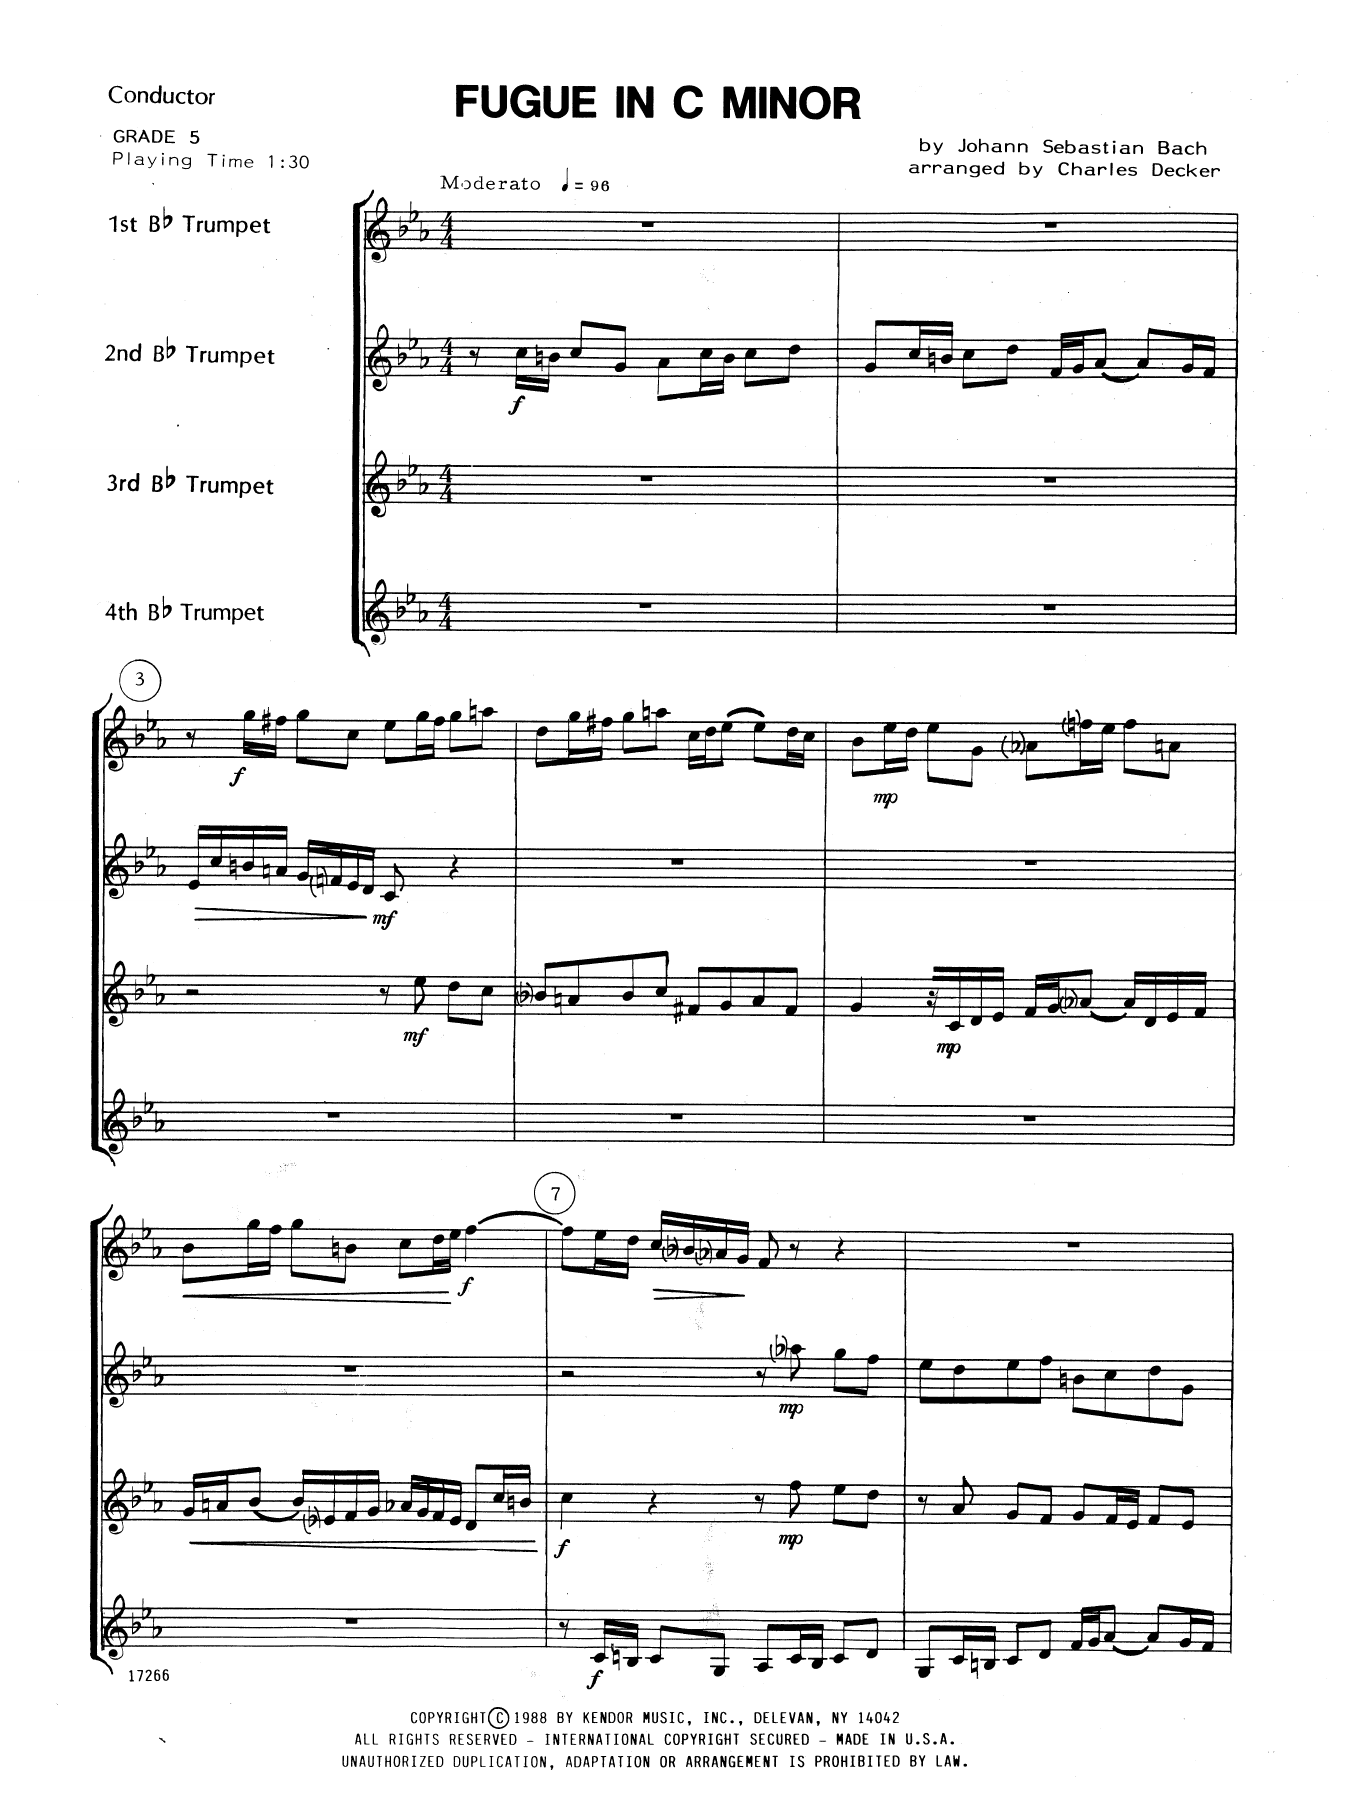 Fugue In C Minor (COMPLETE) sheet music for trumpet quartet by Charles Decker and Johann Sebastian Bach. Score Image Preview.